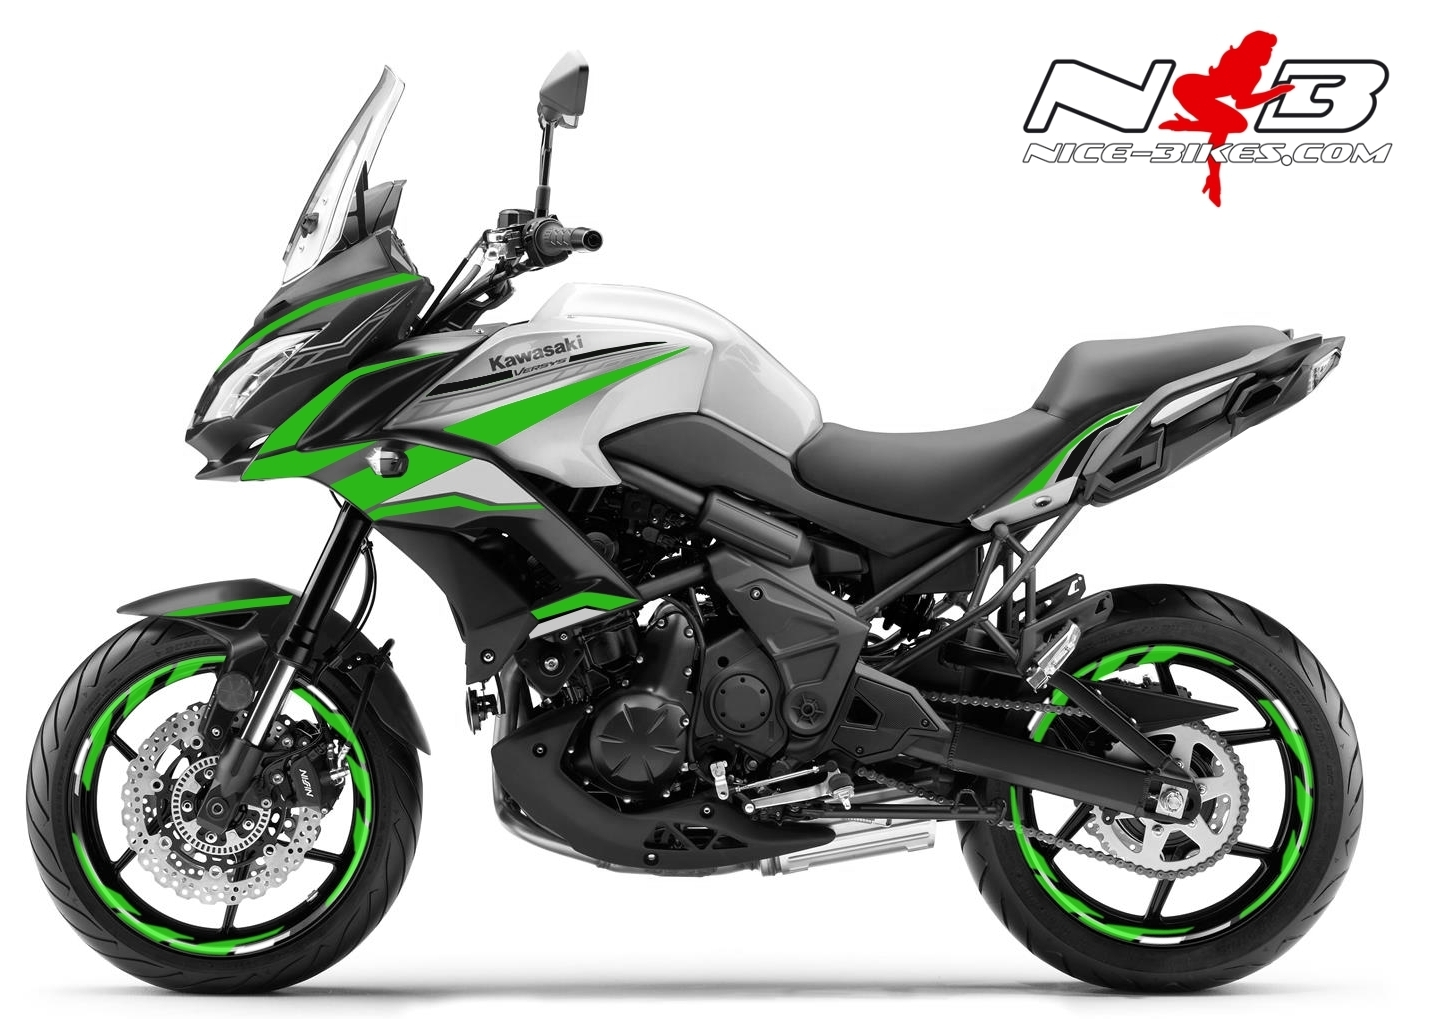 Foliendesign Kawasaki Versys 650 Bj. 2020 Lime Green